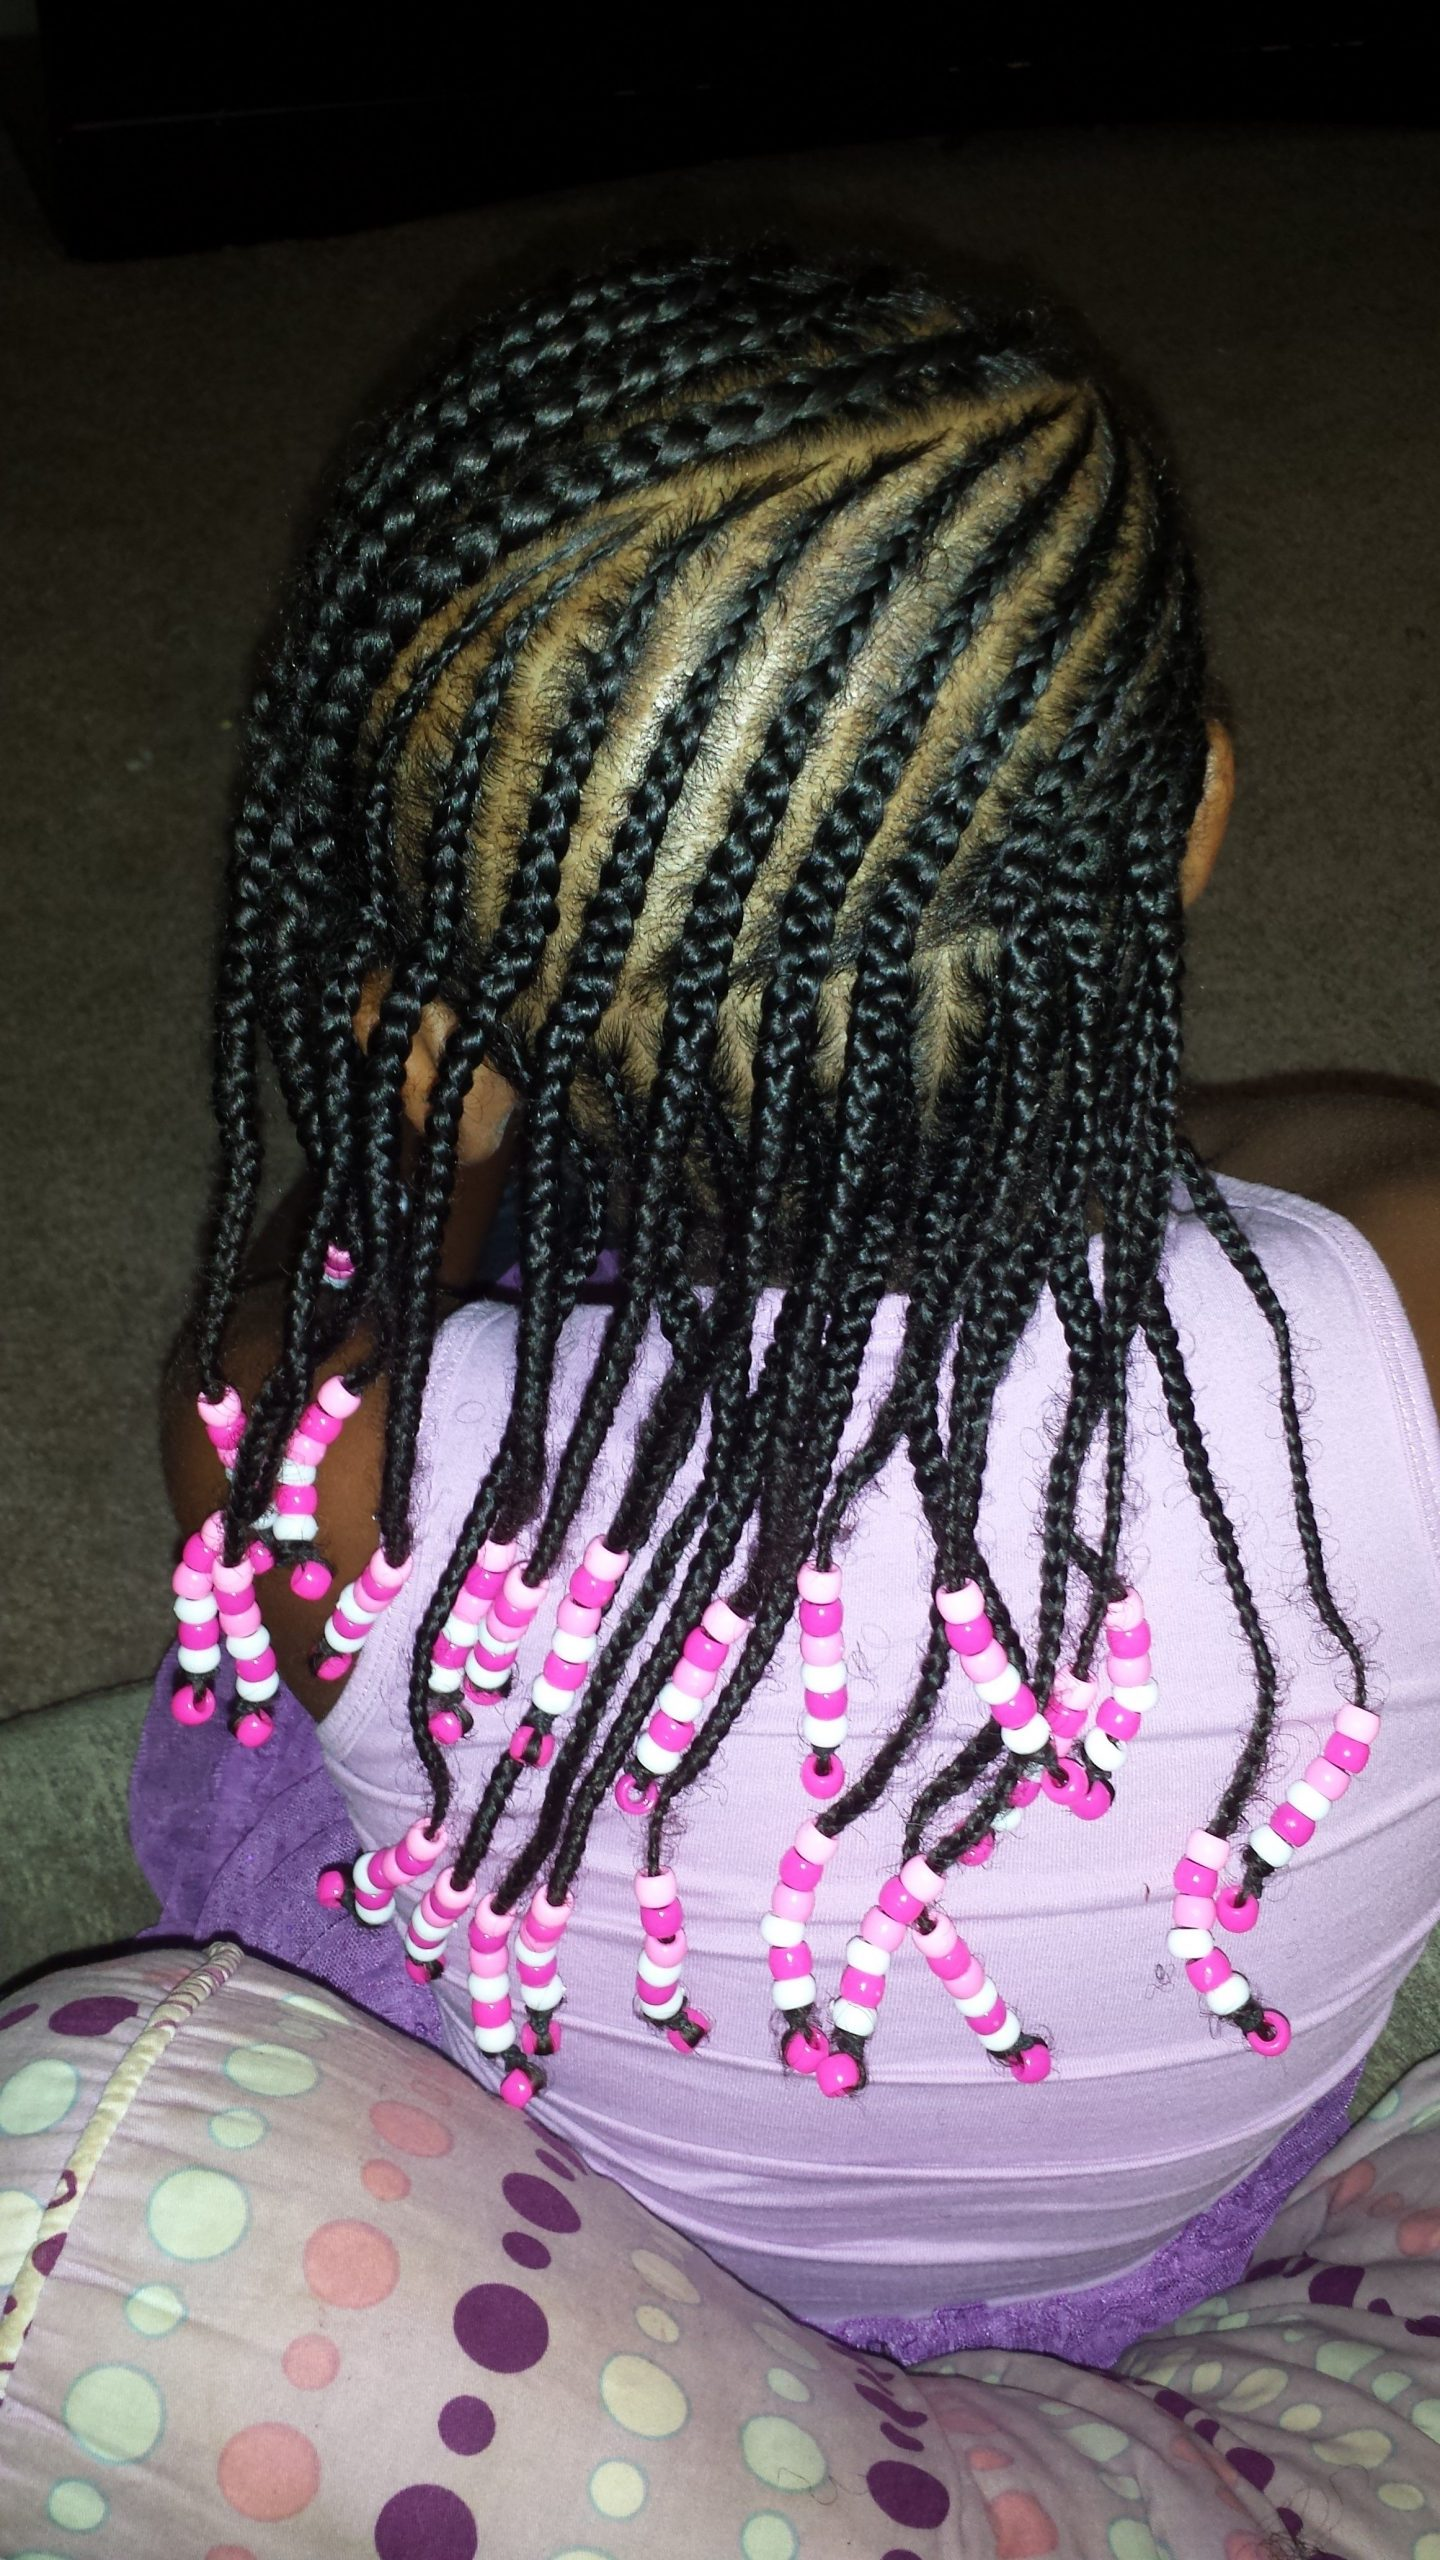 Cute hairstyles for kids hairstyleforblackwomen.net 91 scaled